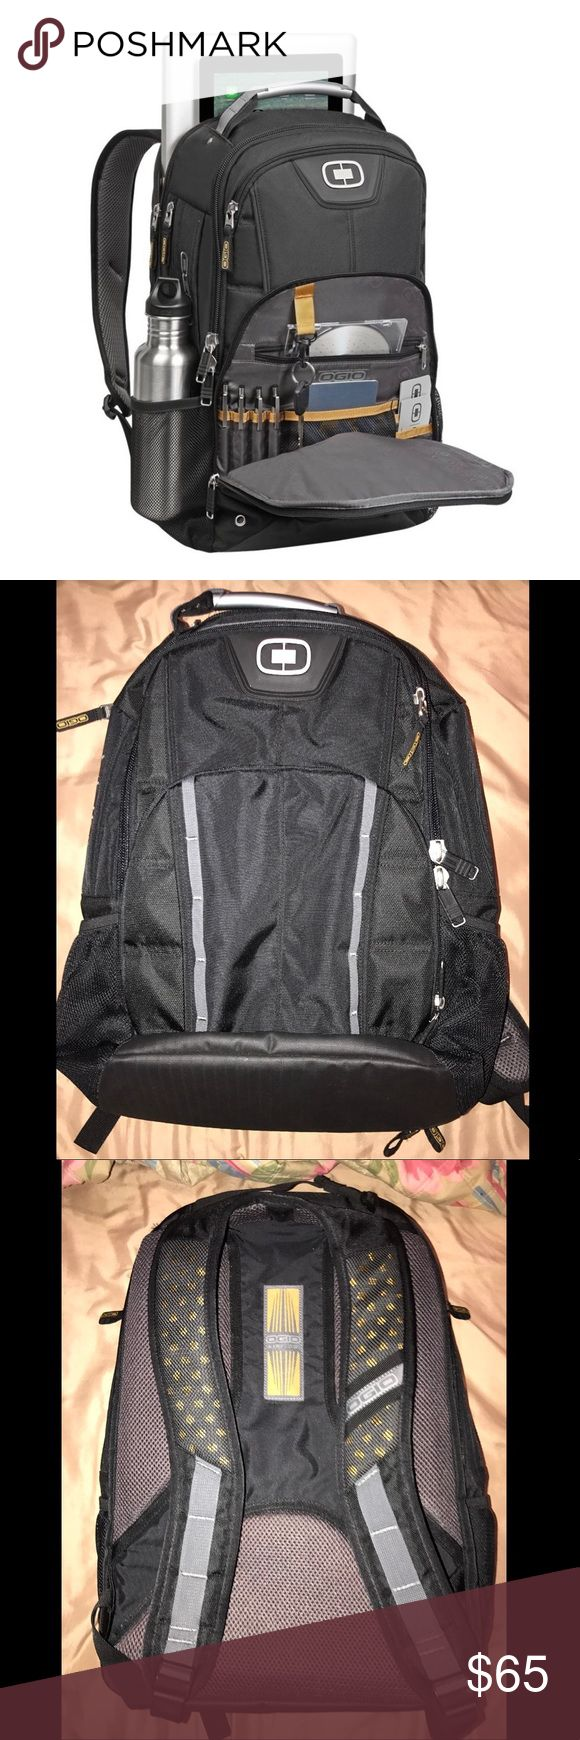 Ogio laptop backpack New without tags never used it, kept in storage holds up to a 17 inch laptop. Many compartments and has very padded straps for comfort. ogio Bags Backpacks